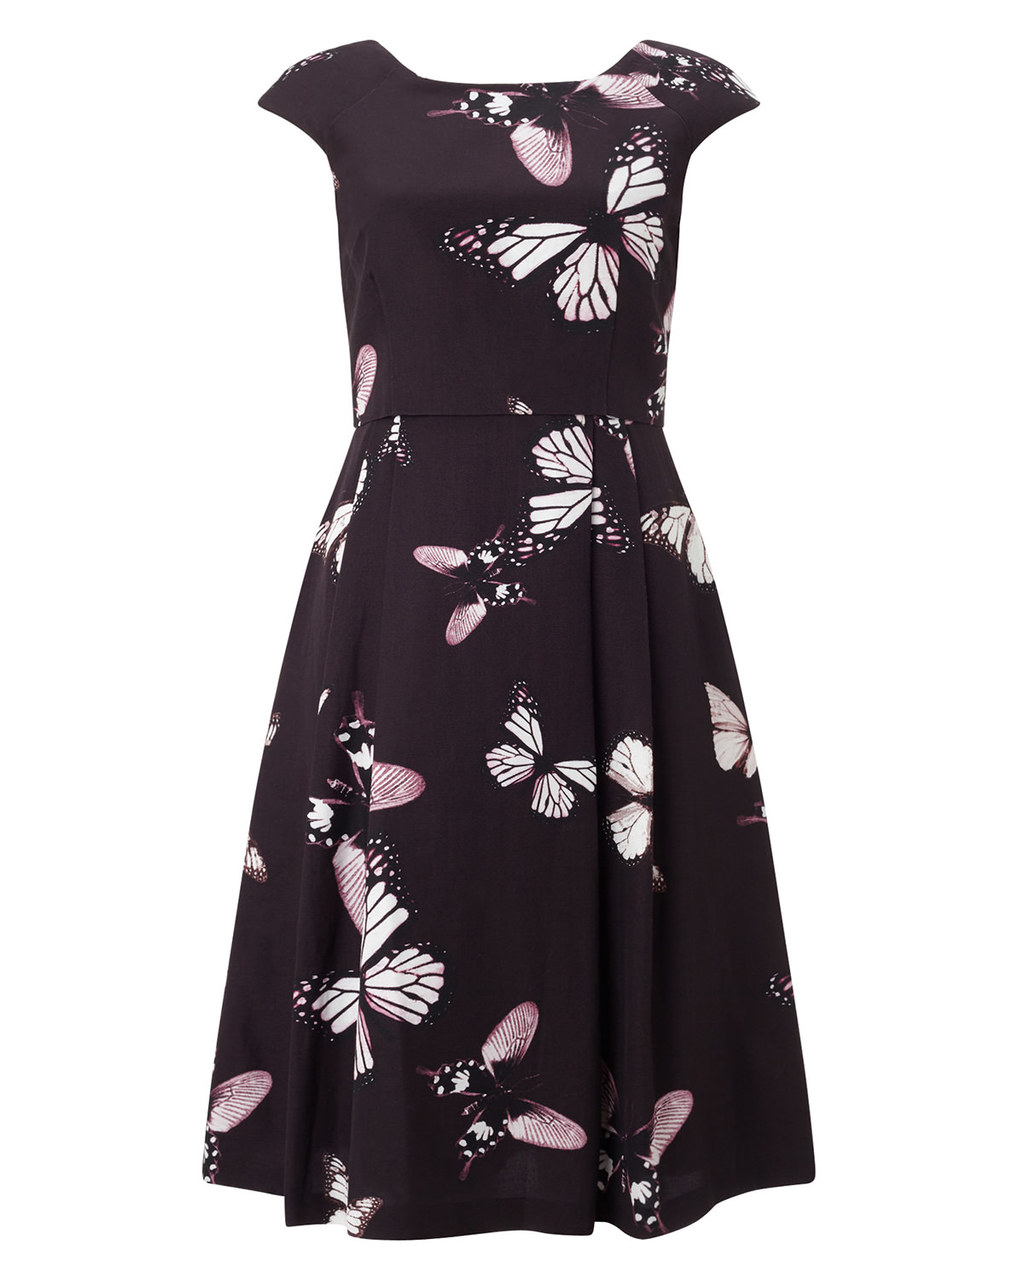 Corinne Dress - length: below the knee; neckline: round neck; sleeve style: capped; secondary colour: blush; predominant colour: black; occasions: evening, occasion; fit: fitted at waist & bust; style: fit & flare; fibres: cotton - mix; hip detail: soft pleats at hip/draping at hip/flared at hip; sleeve length: sleeveless; pattern type: fabric; pattern: florals; texture group: woven light midweight; multicoloured: multicoloured; season: a/w 2015; wardrobe: event